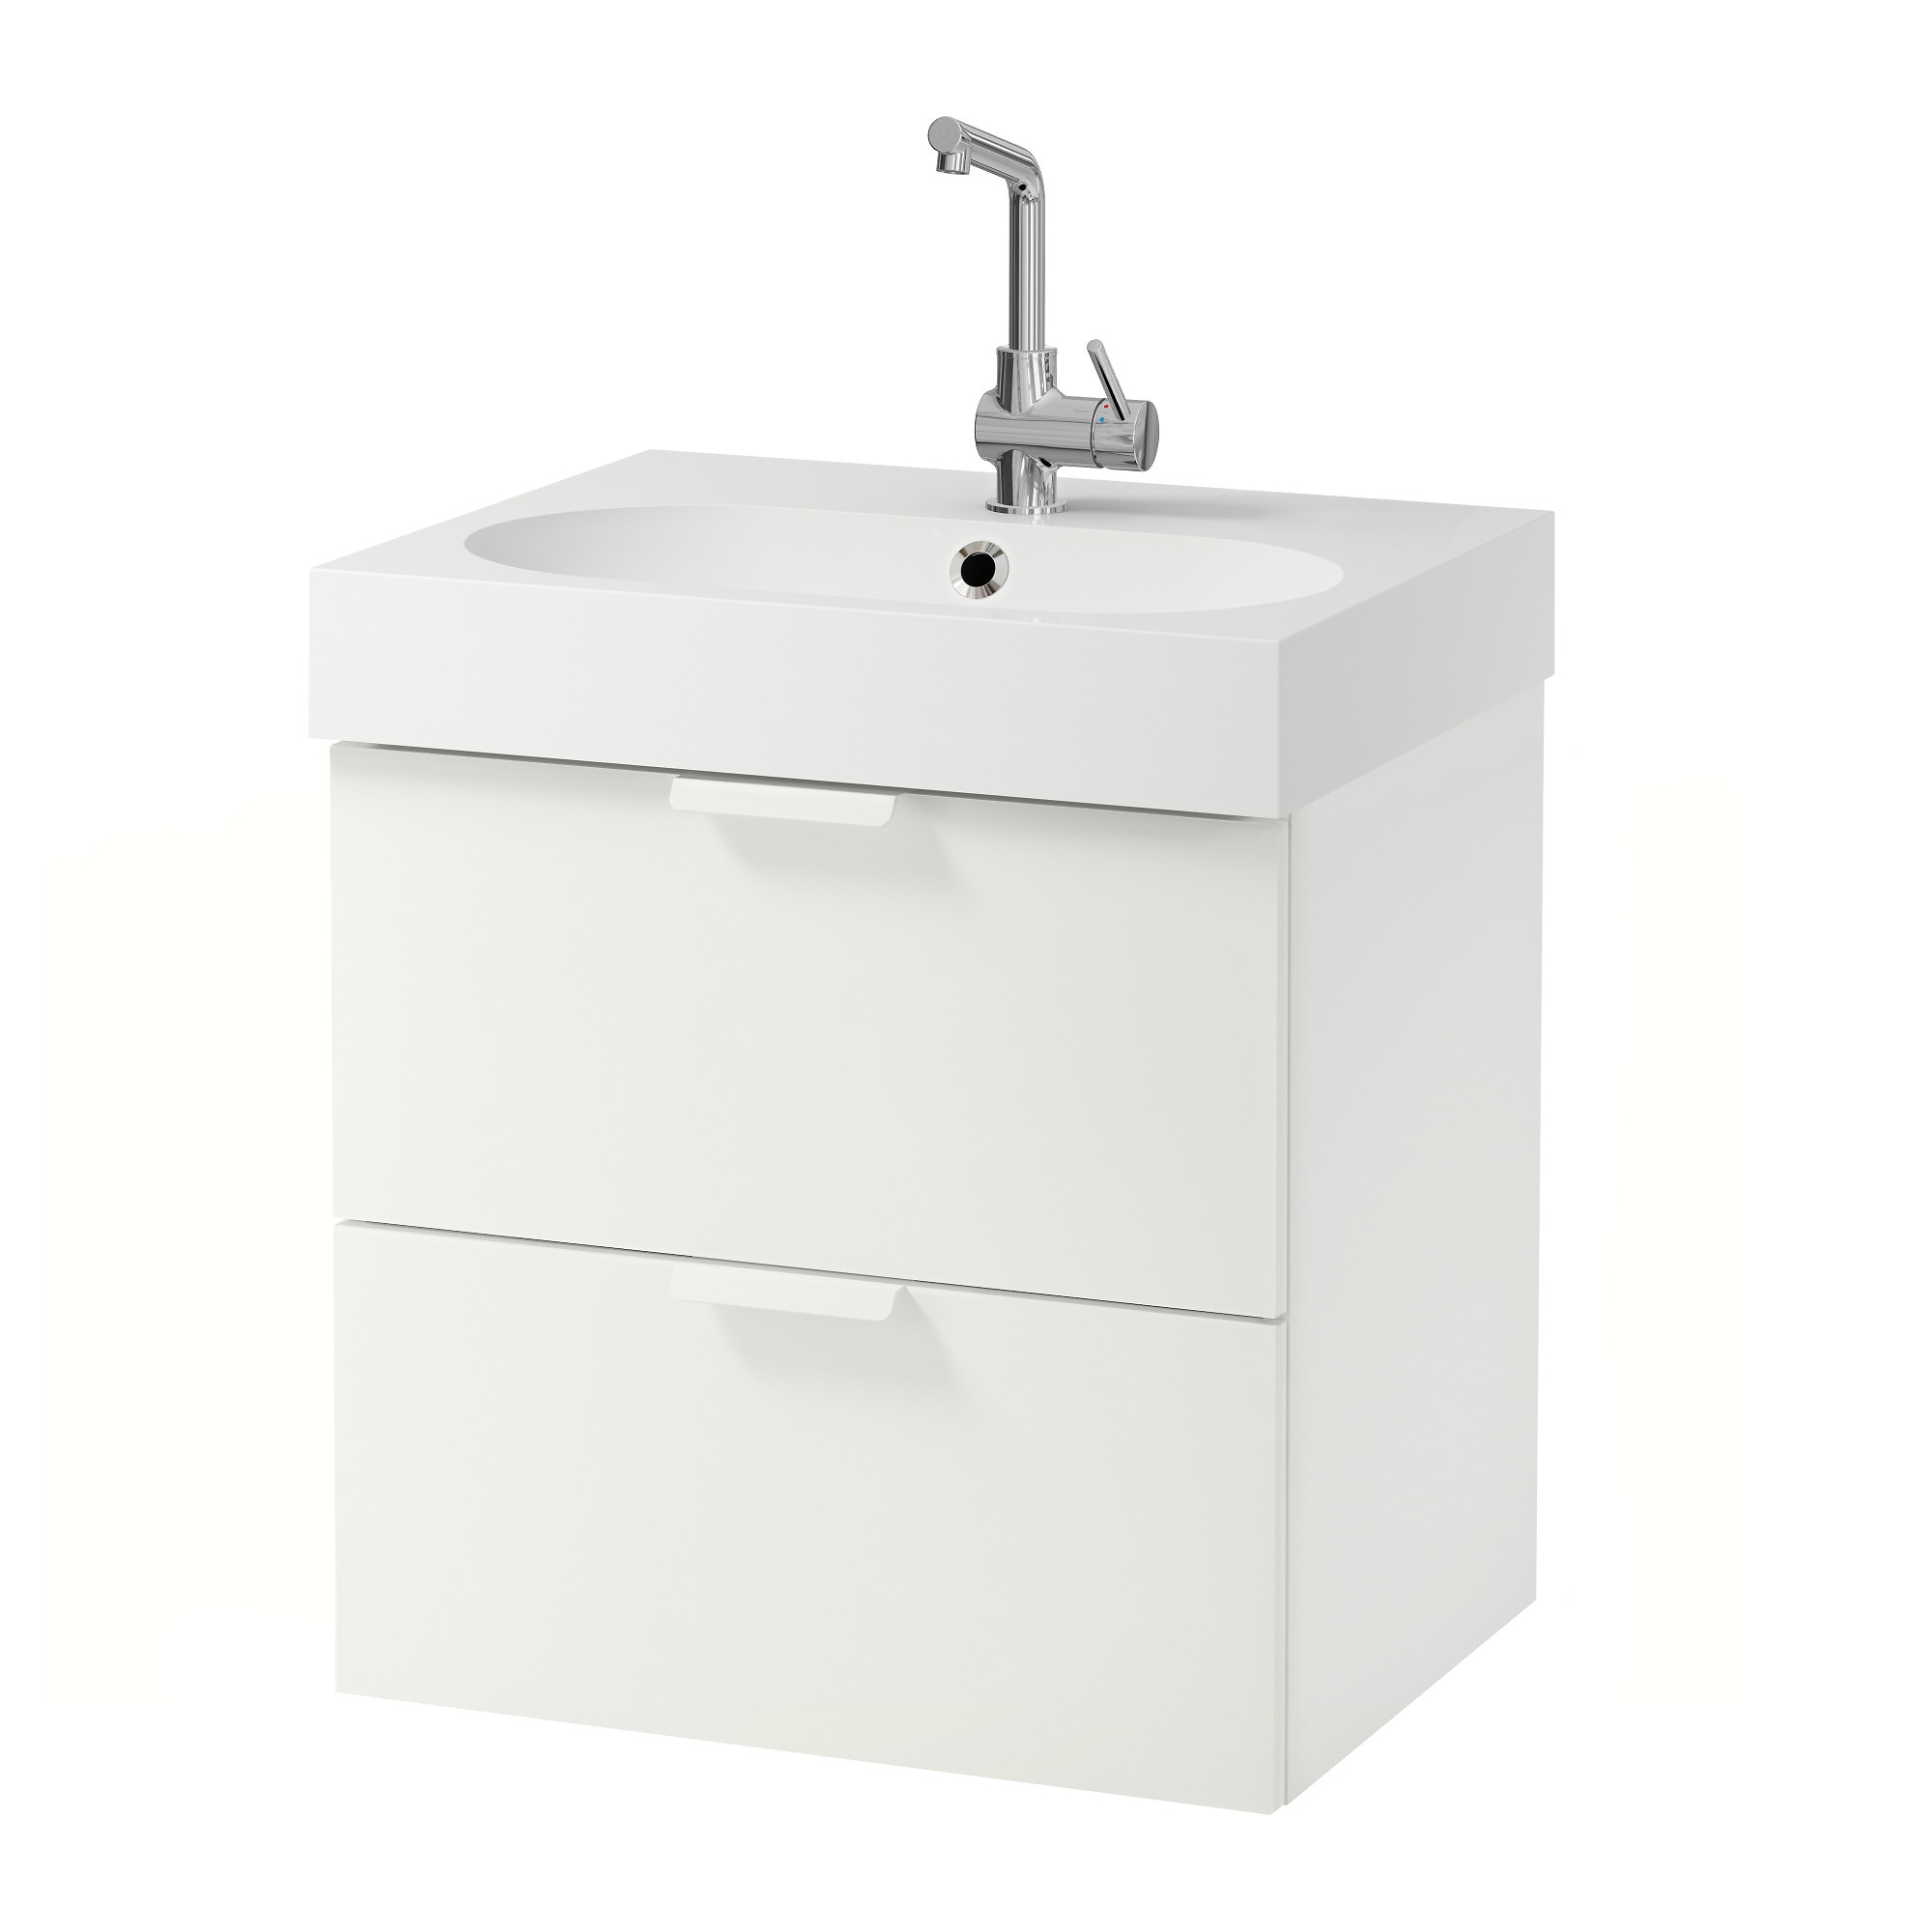 Bathroom Vanity 24 X 17 bathroom vanities & countertops - ikea